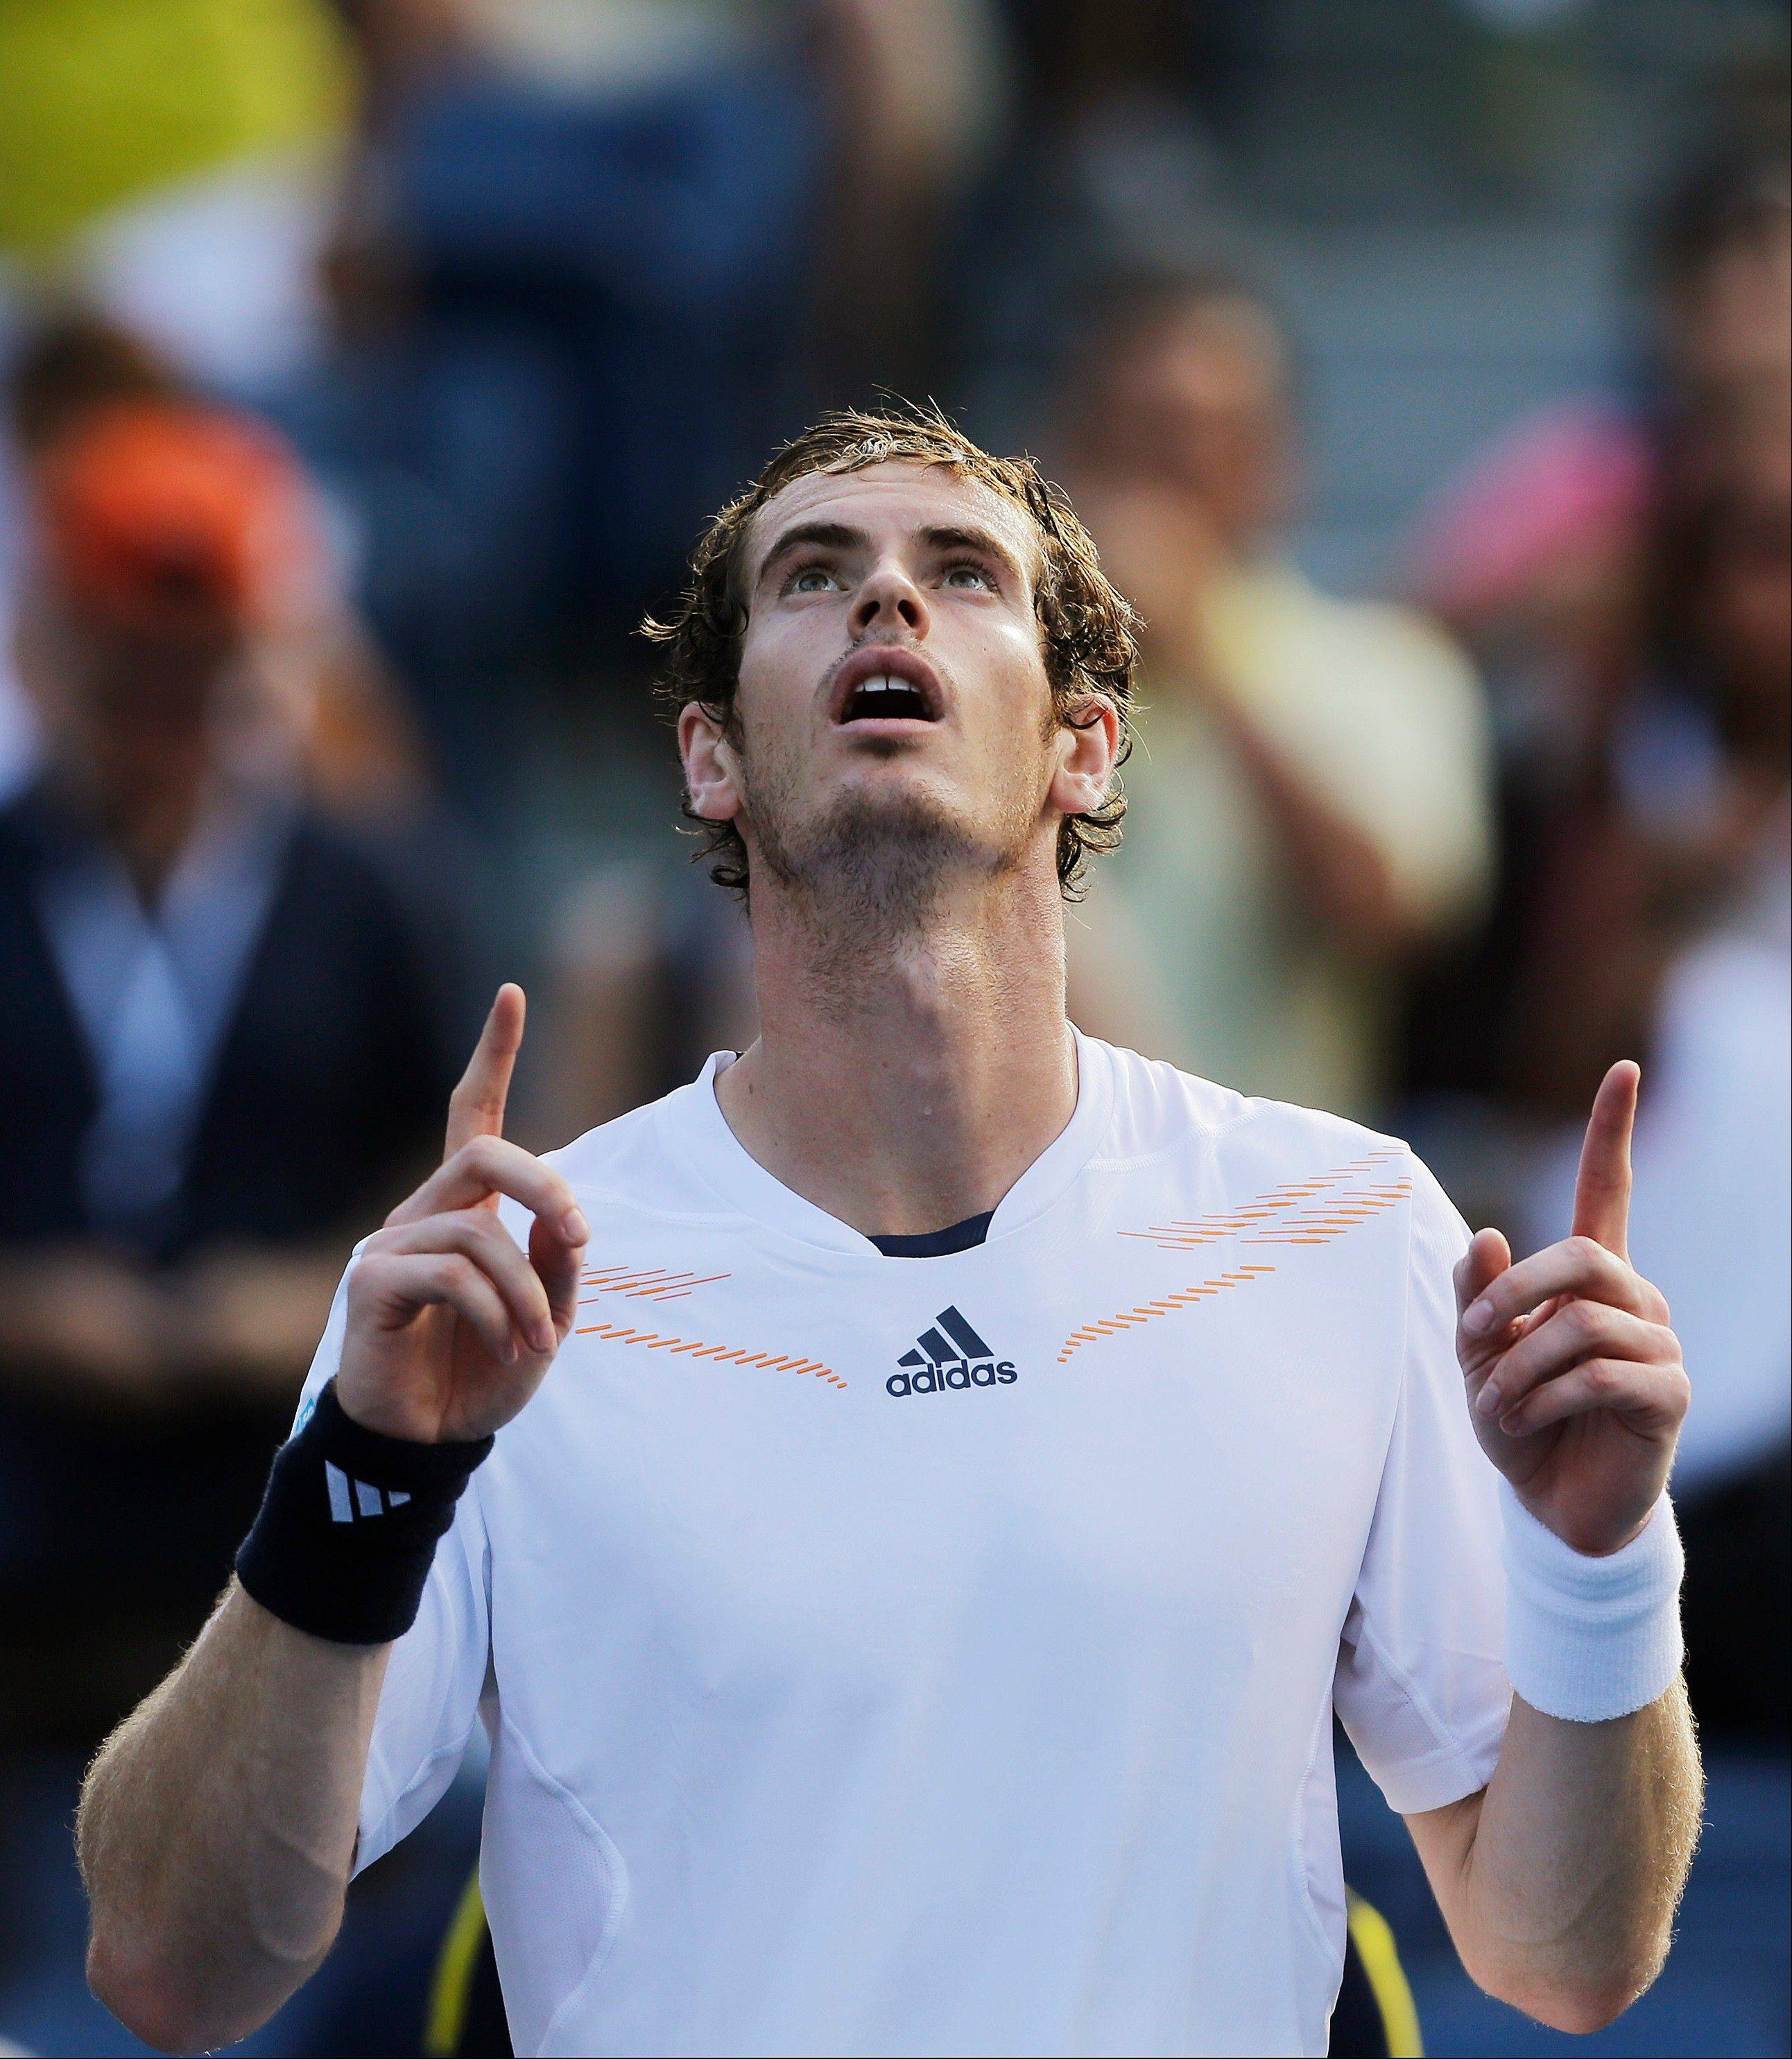 Murray overcomes slow starts, wins at U.S. Open